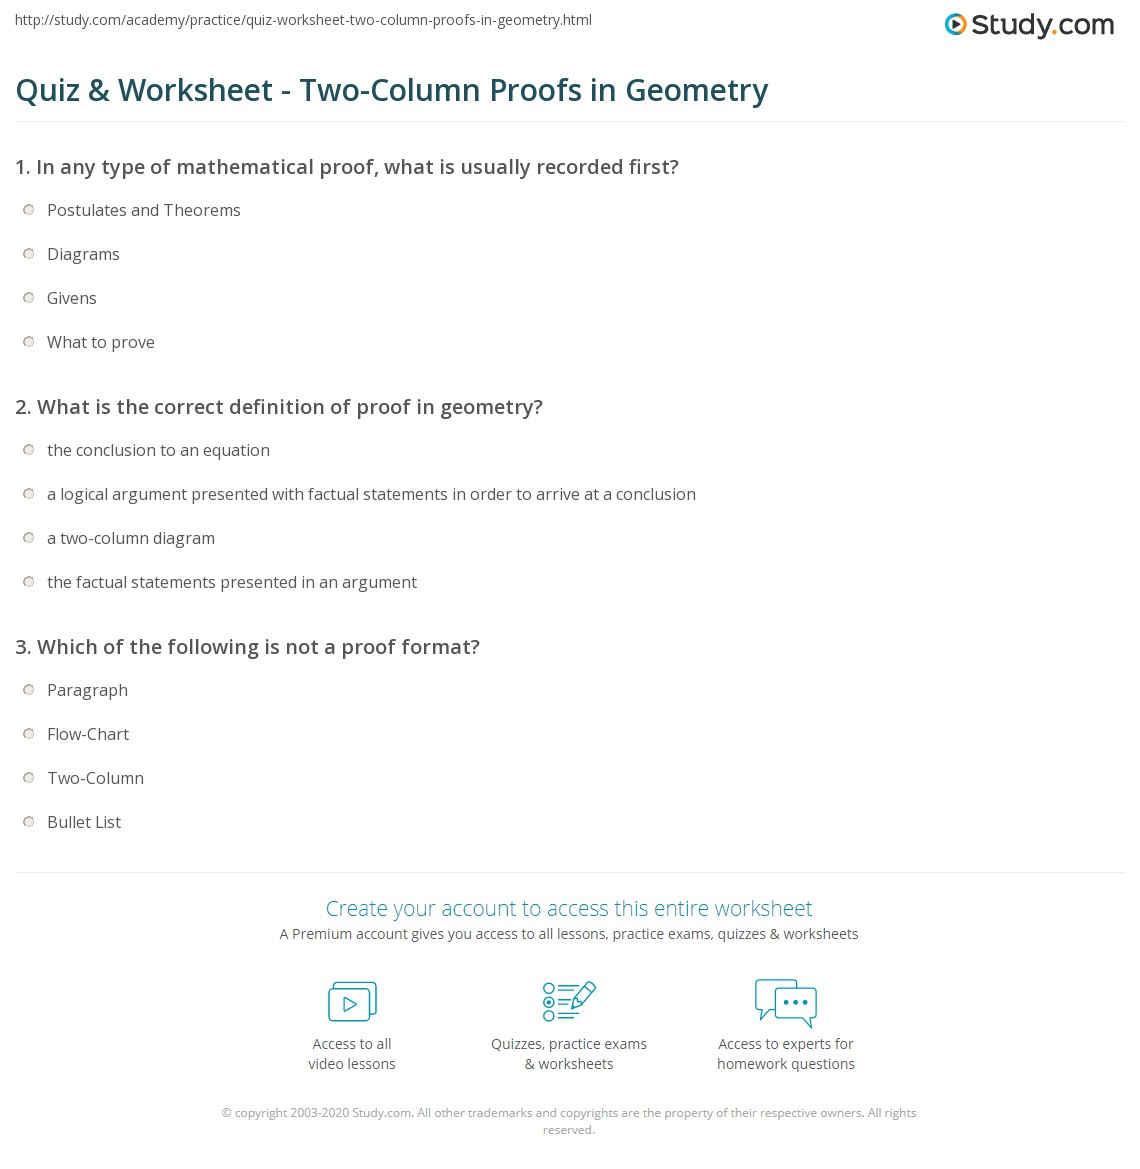 Quiz Worksheet TwoColumn Proofs in Geometry – Geometry Proofs Worksheets with Answers